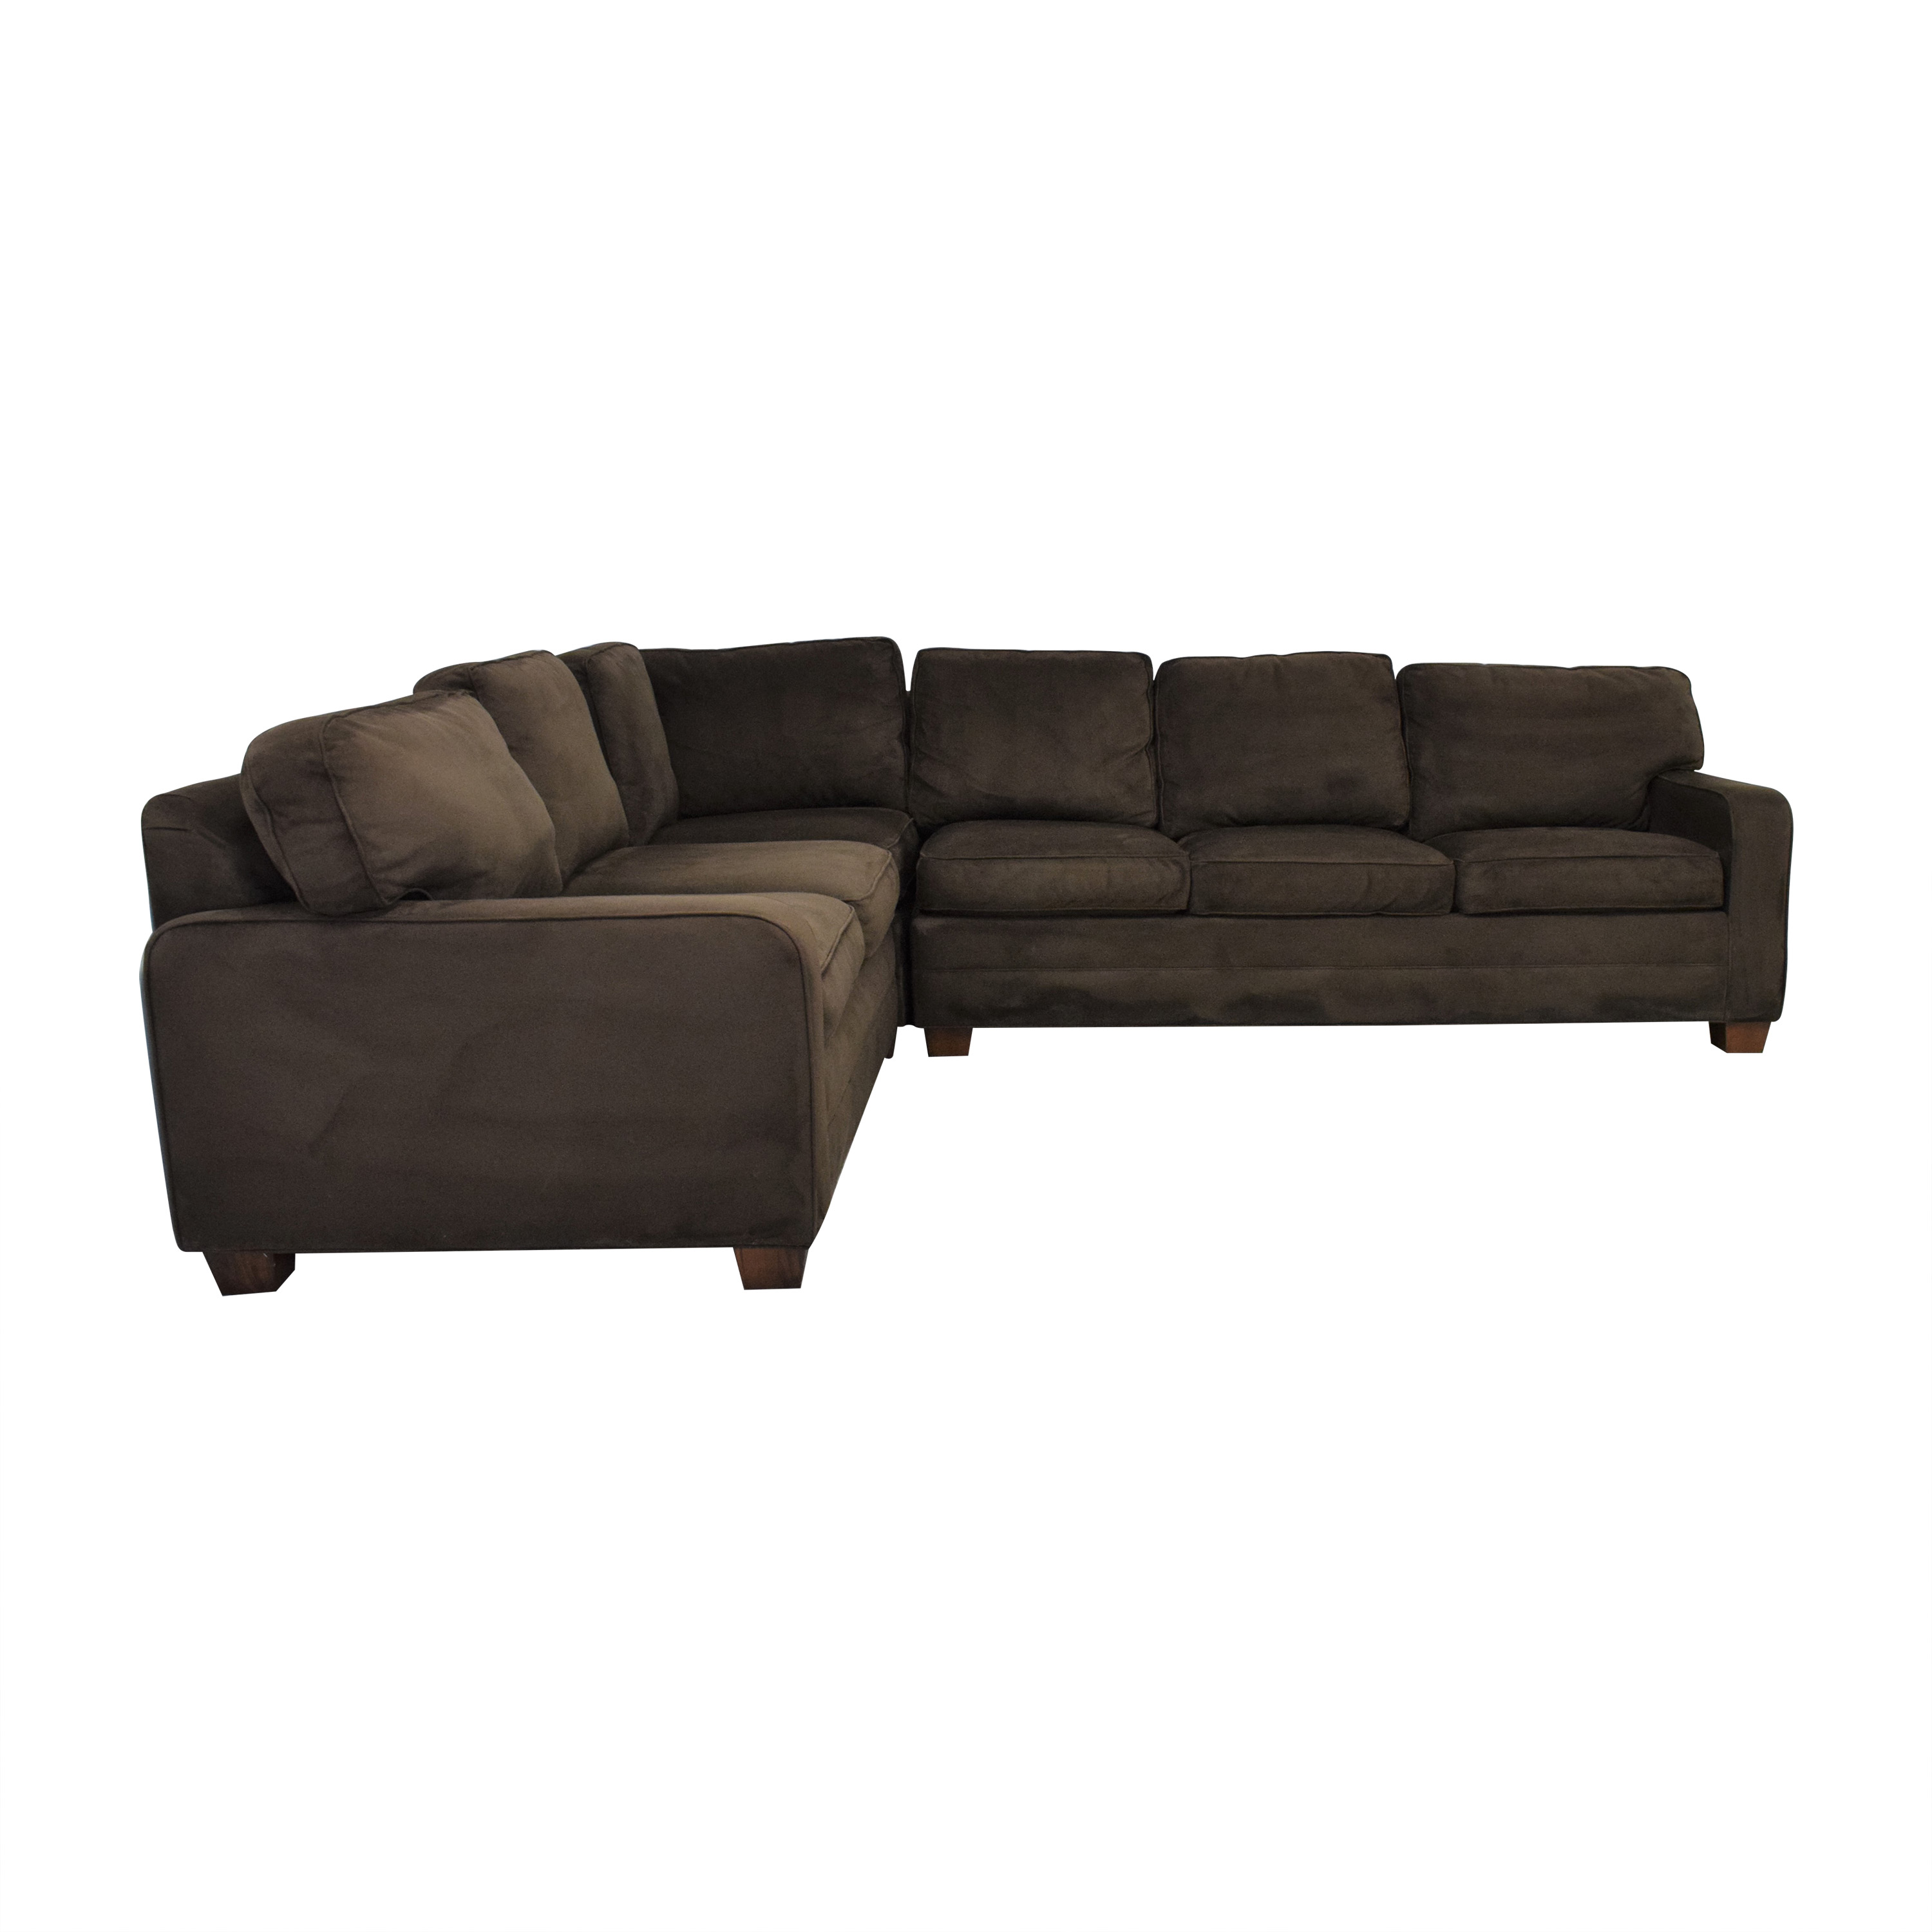 Taylor King Taylor King Brushed Velvet Queen Sectional Sofa used